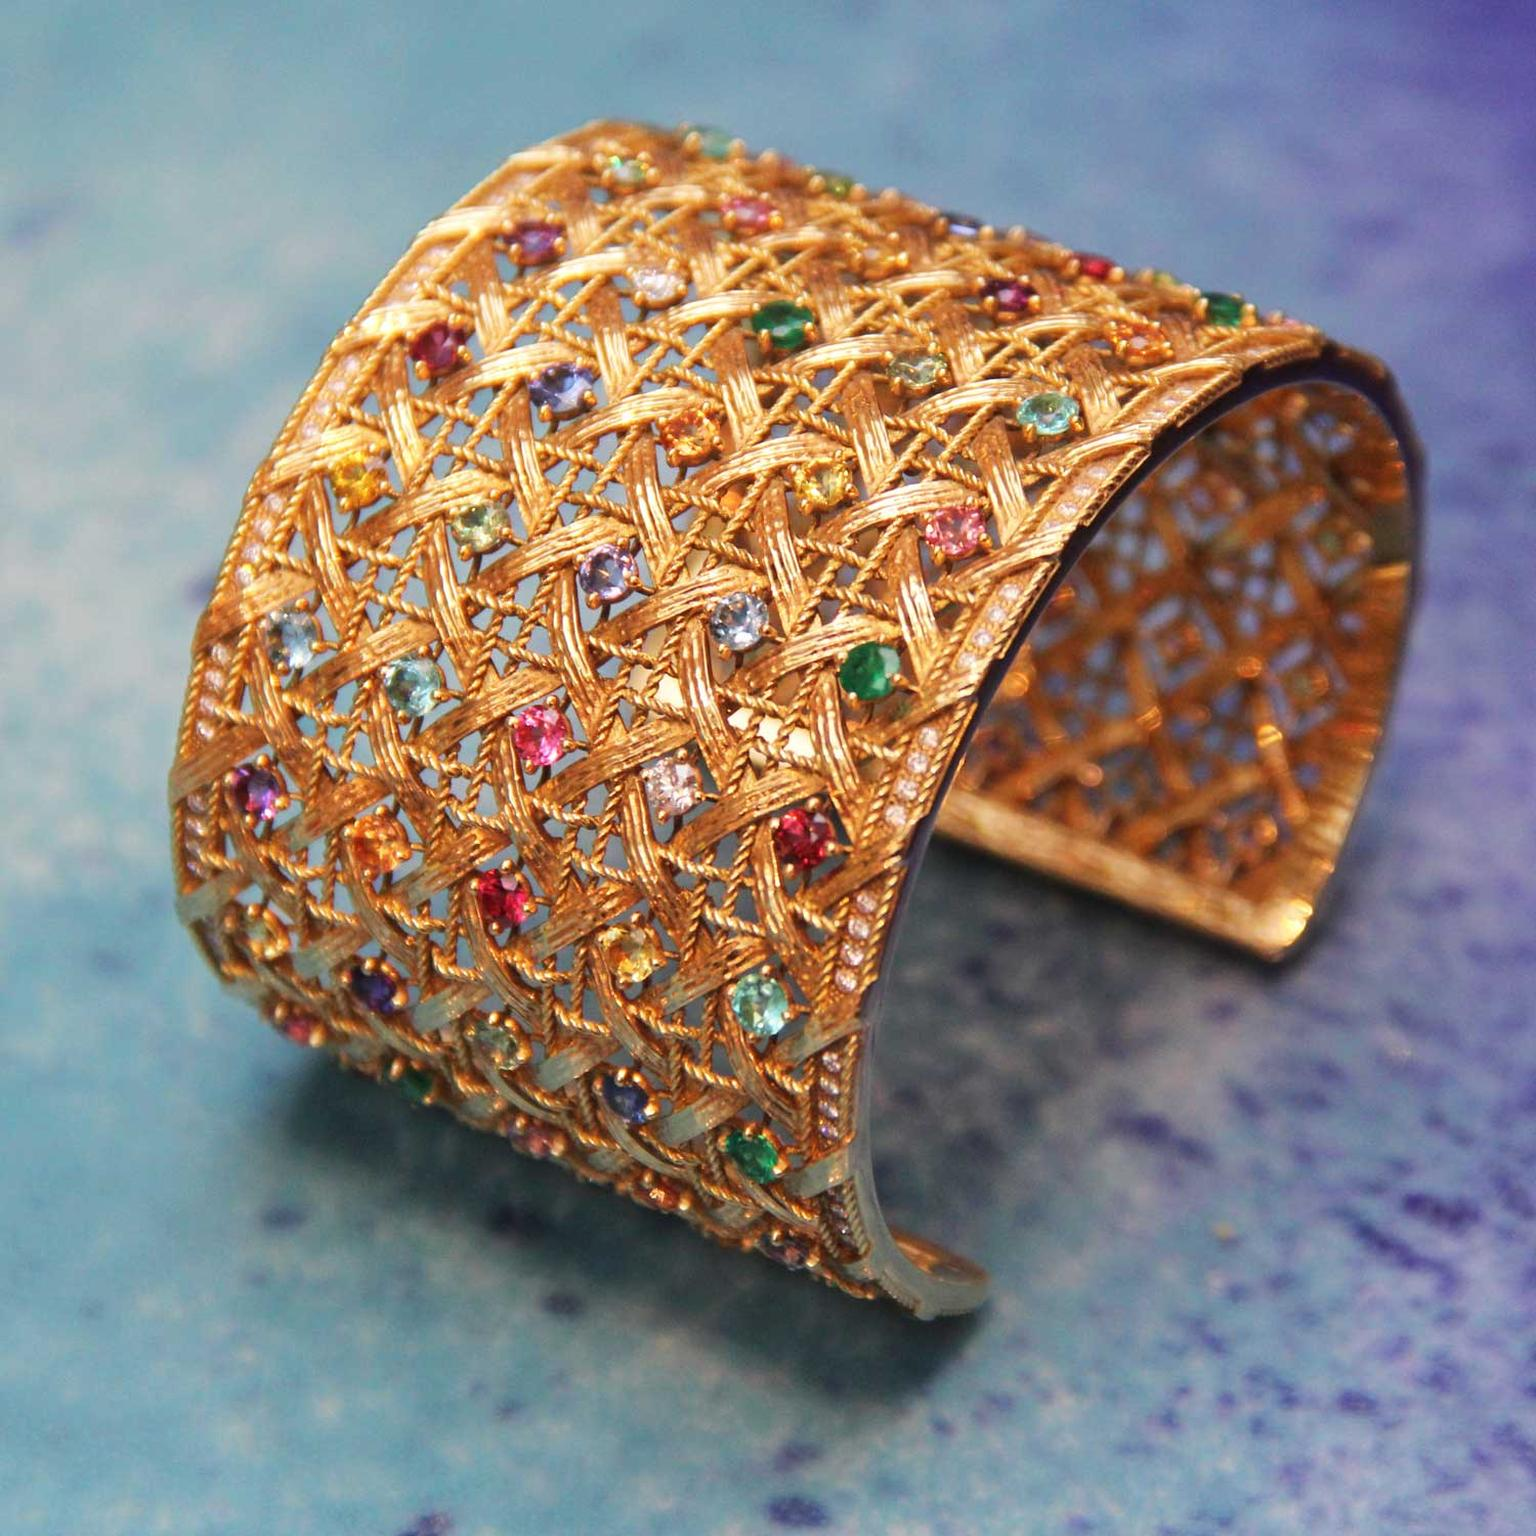 My Dior Cuff bracelet with multi-coloured stones